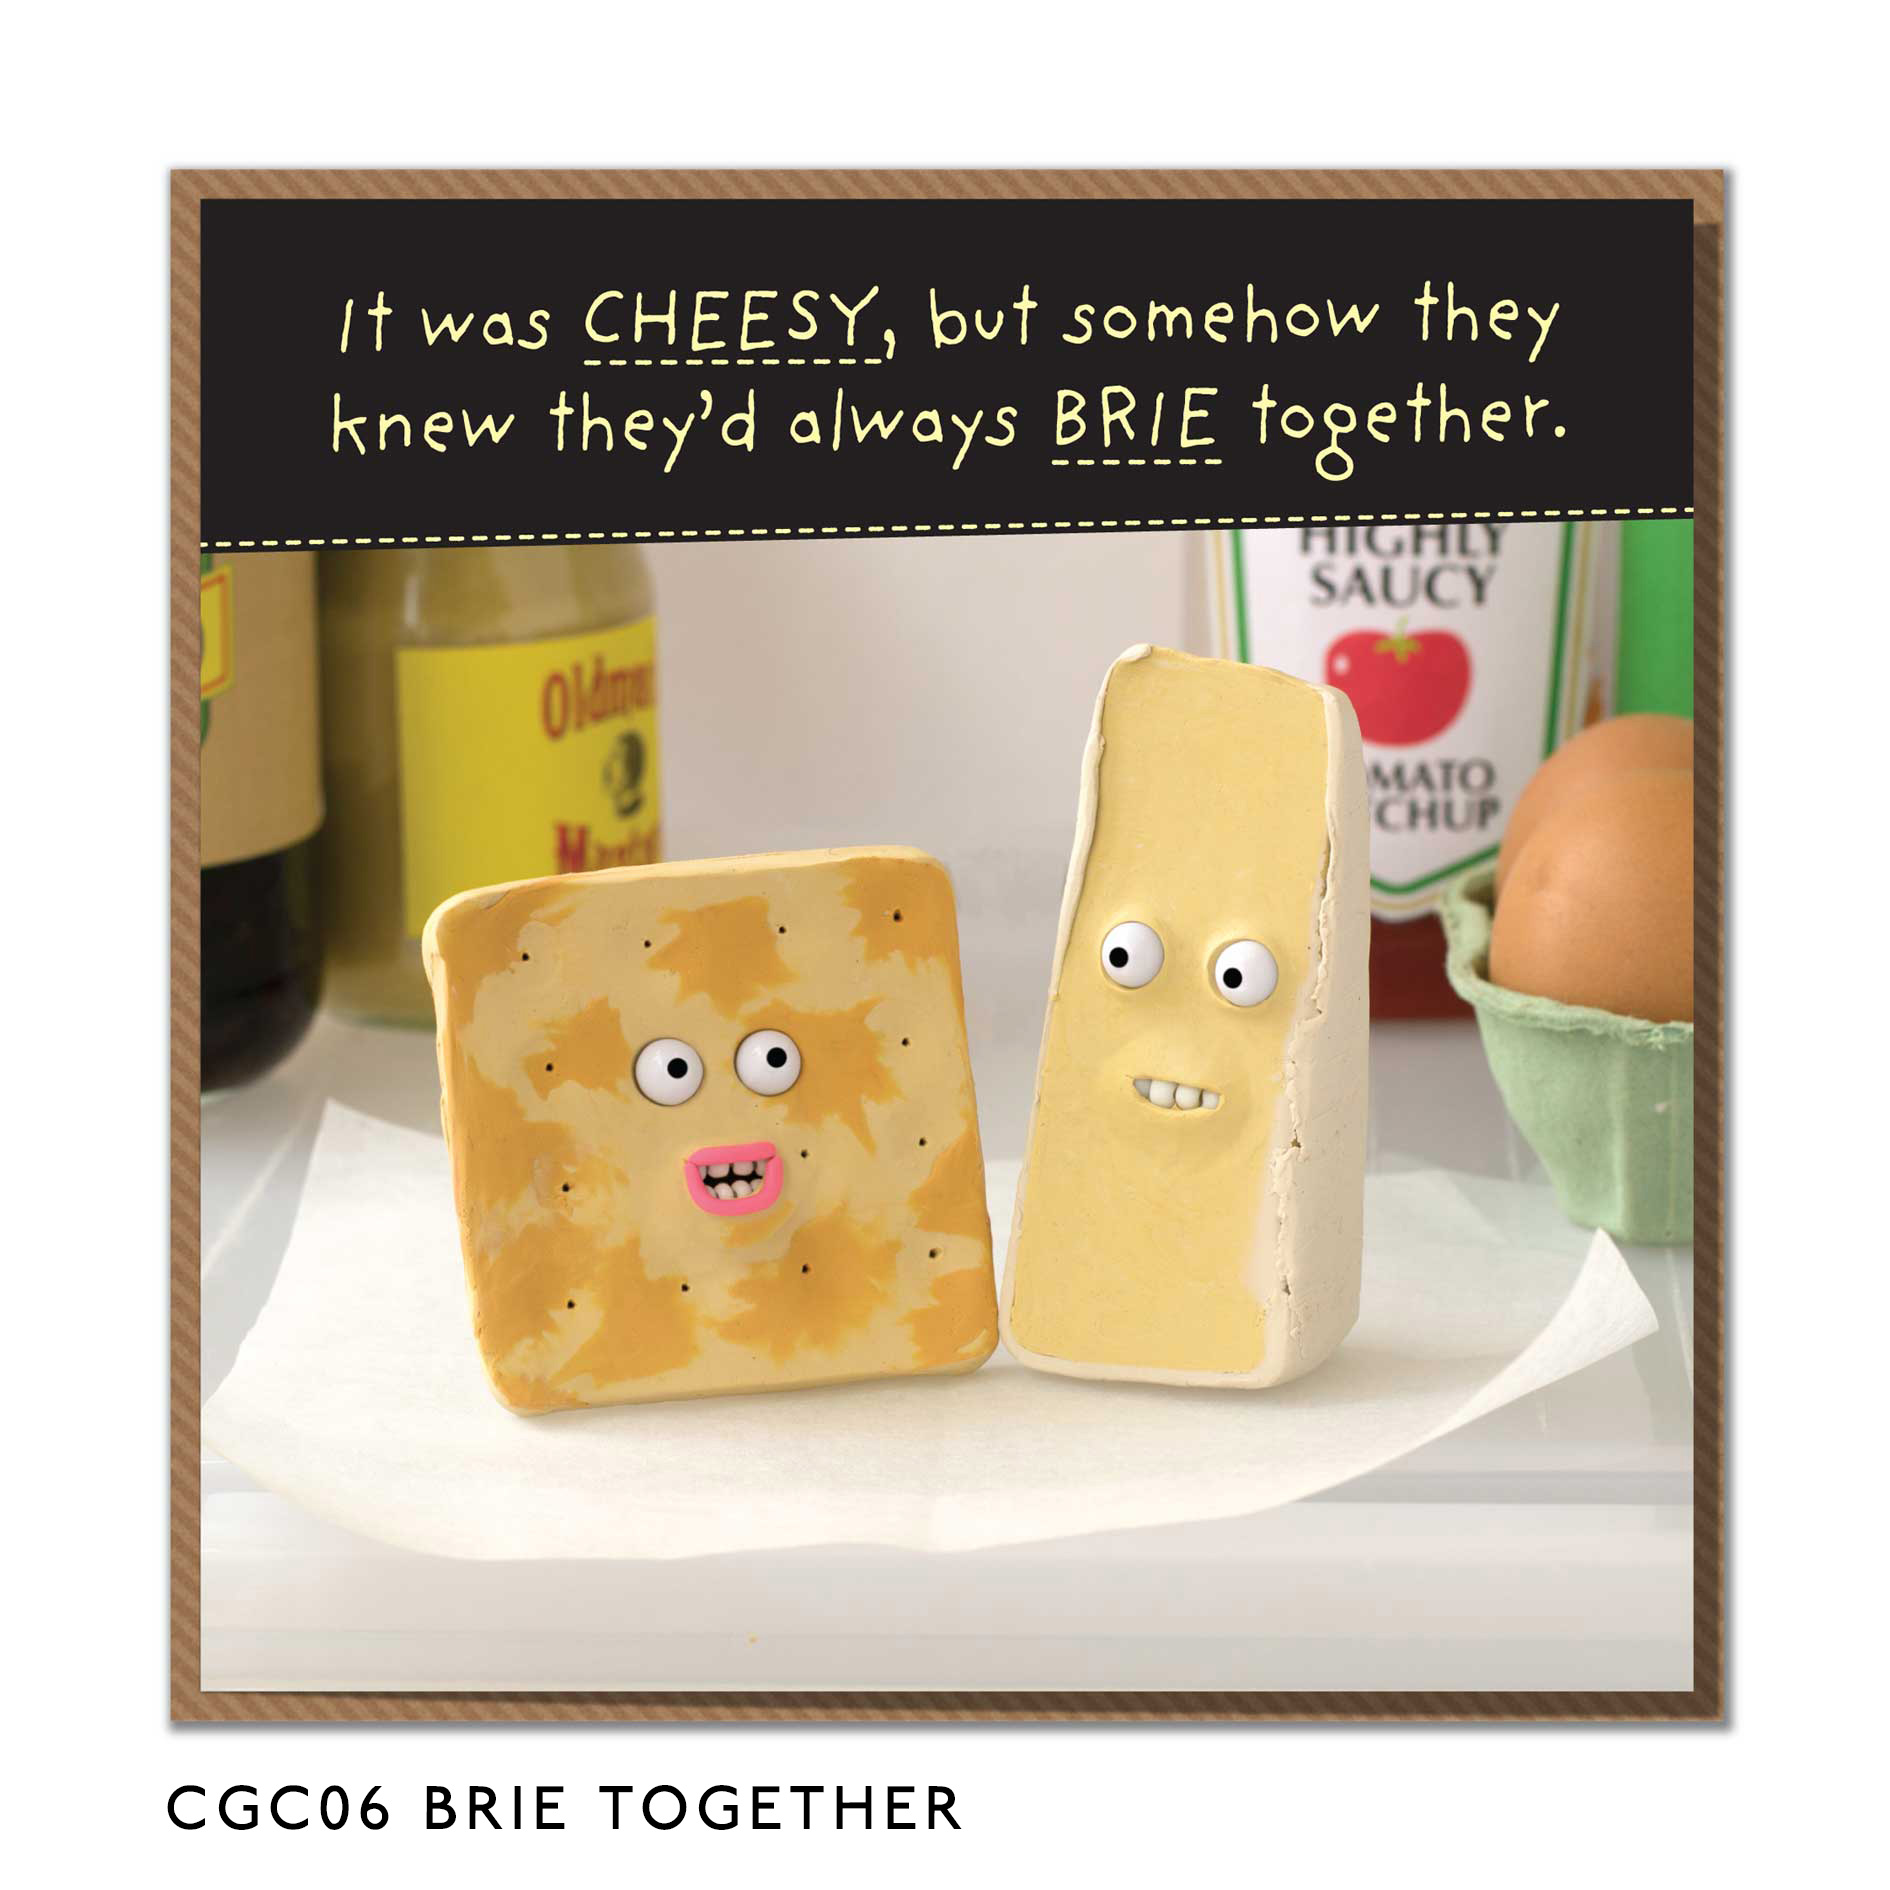 CGC06-BRIE-TOGETHER.jpg